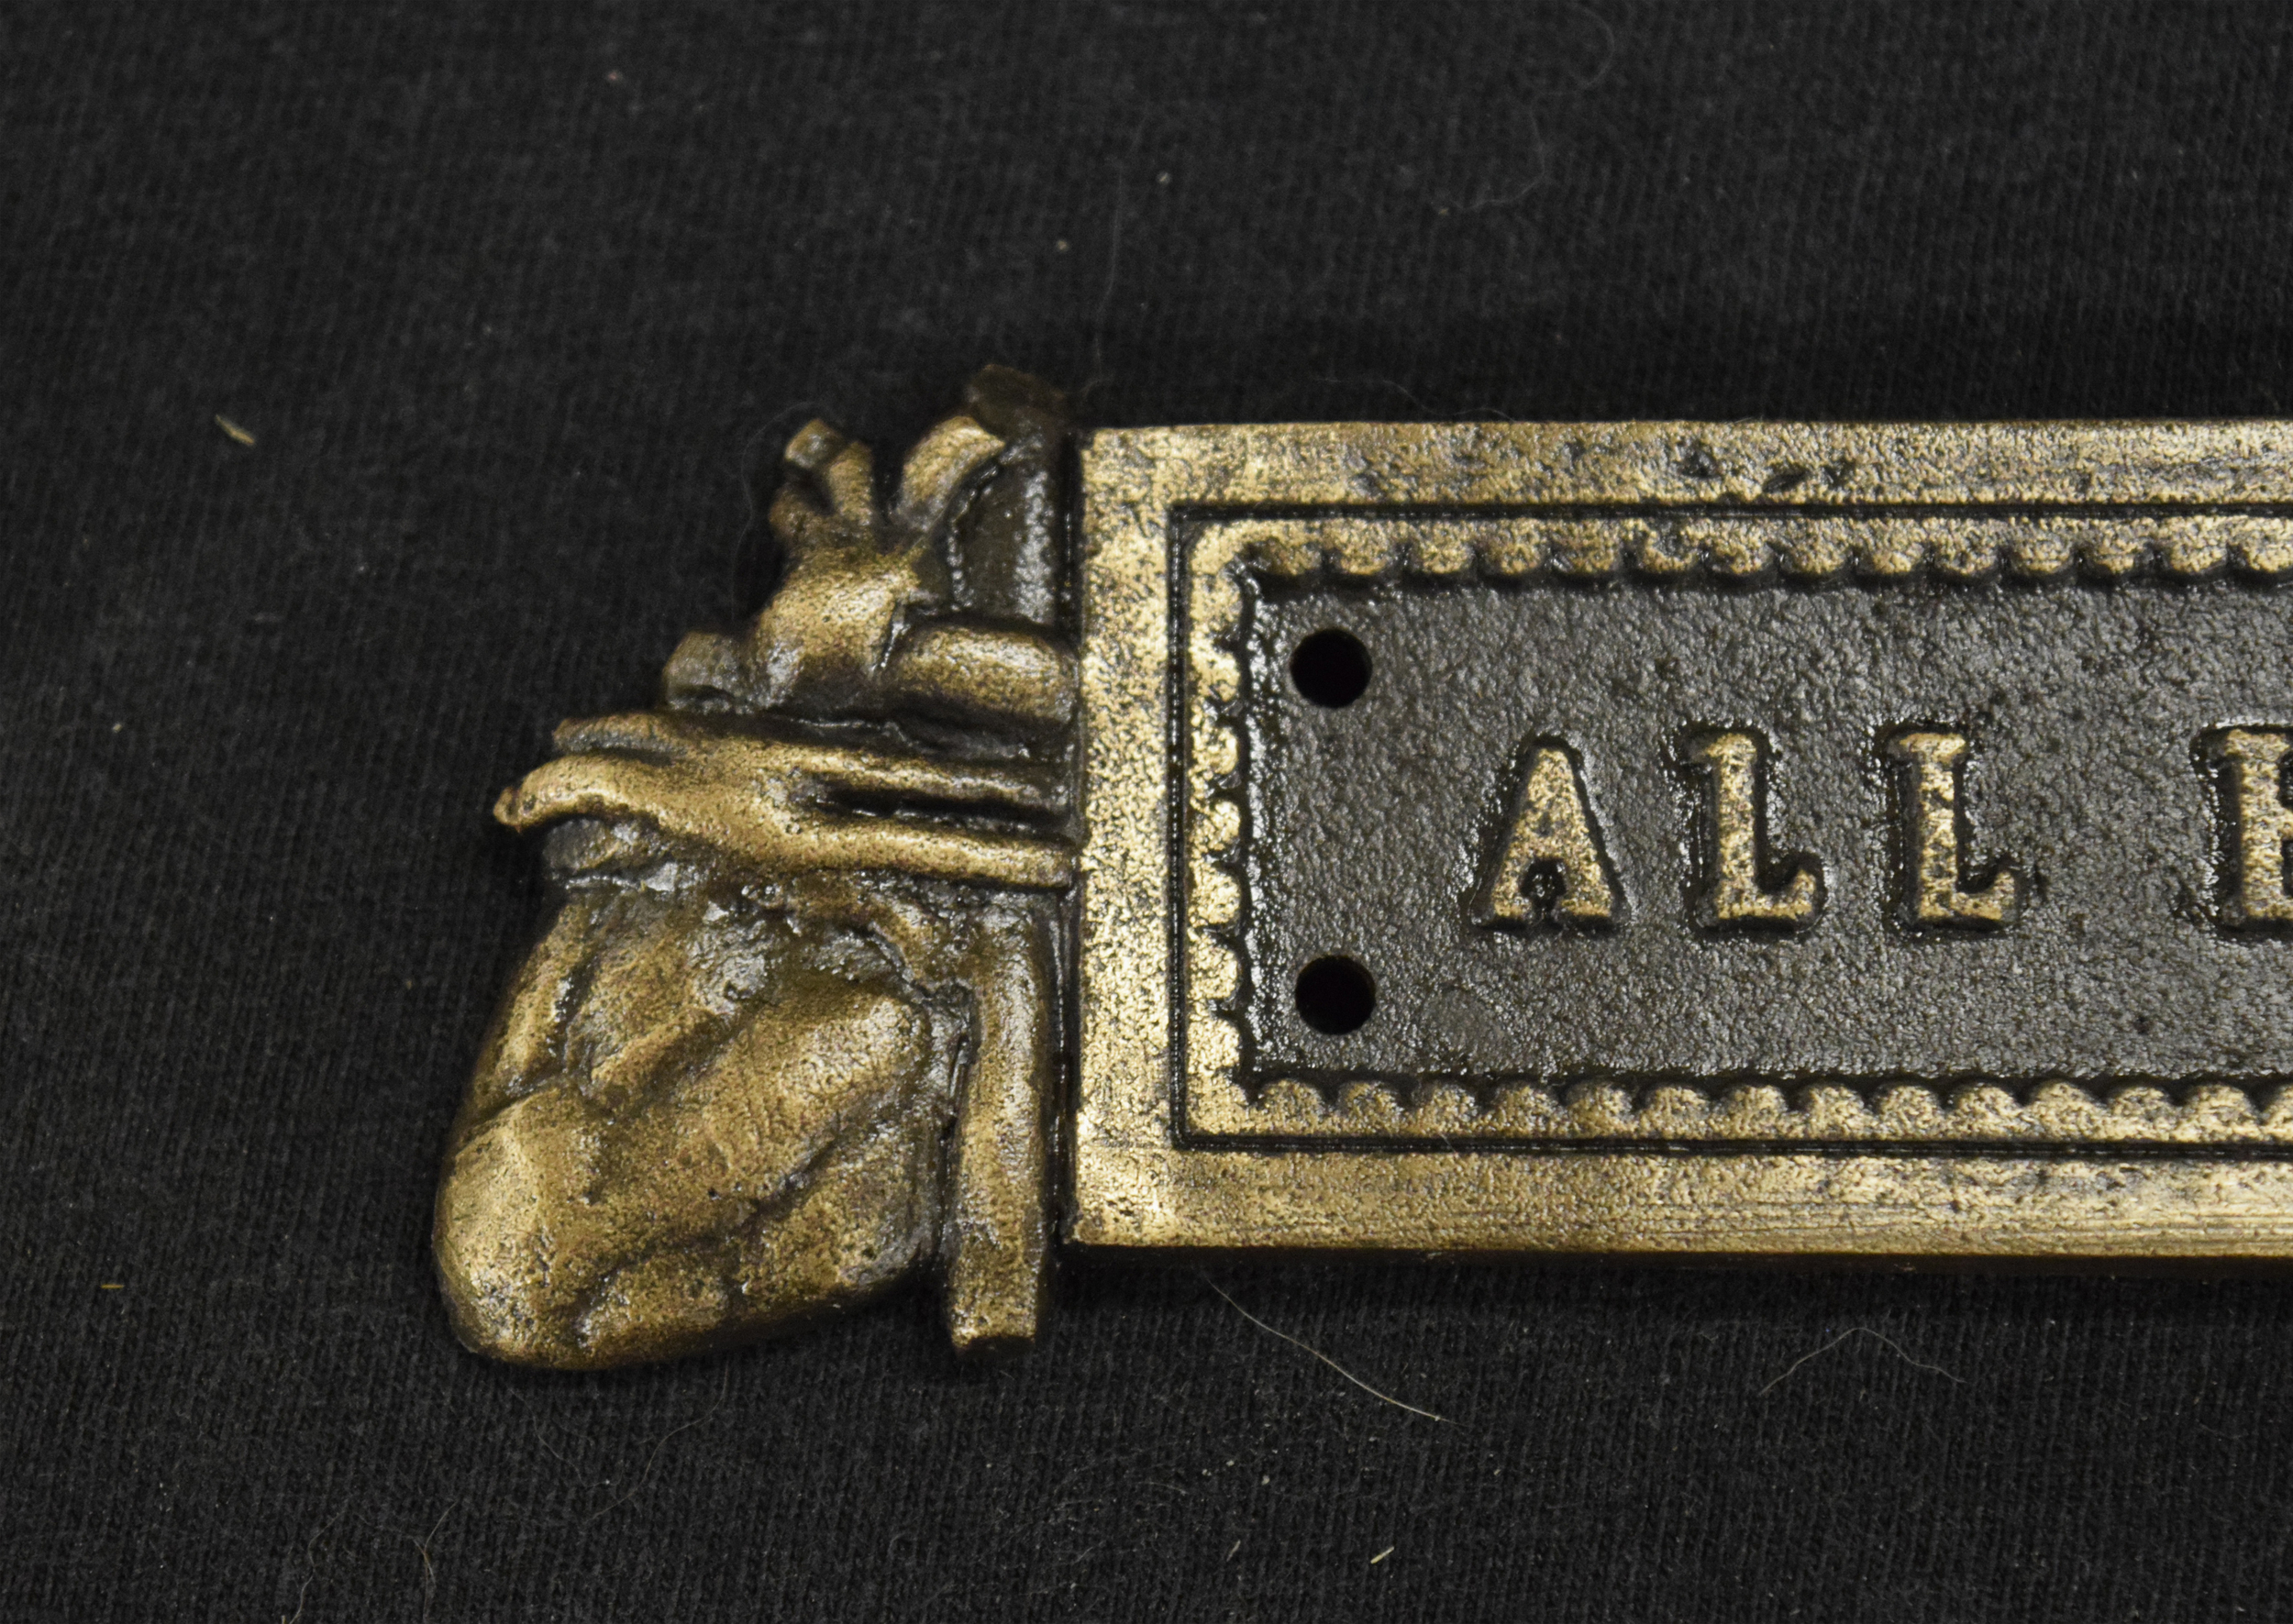 Detail of the posterior heart on the title plate.